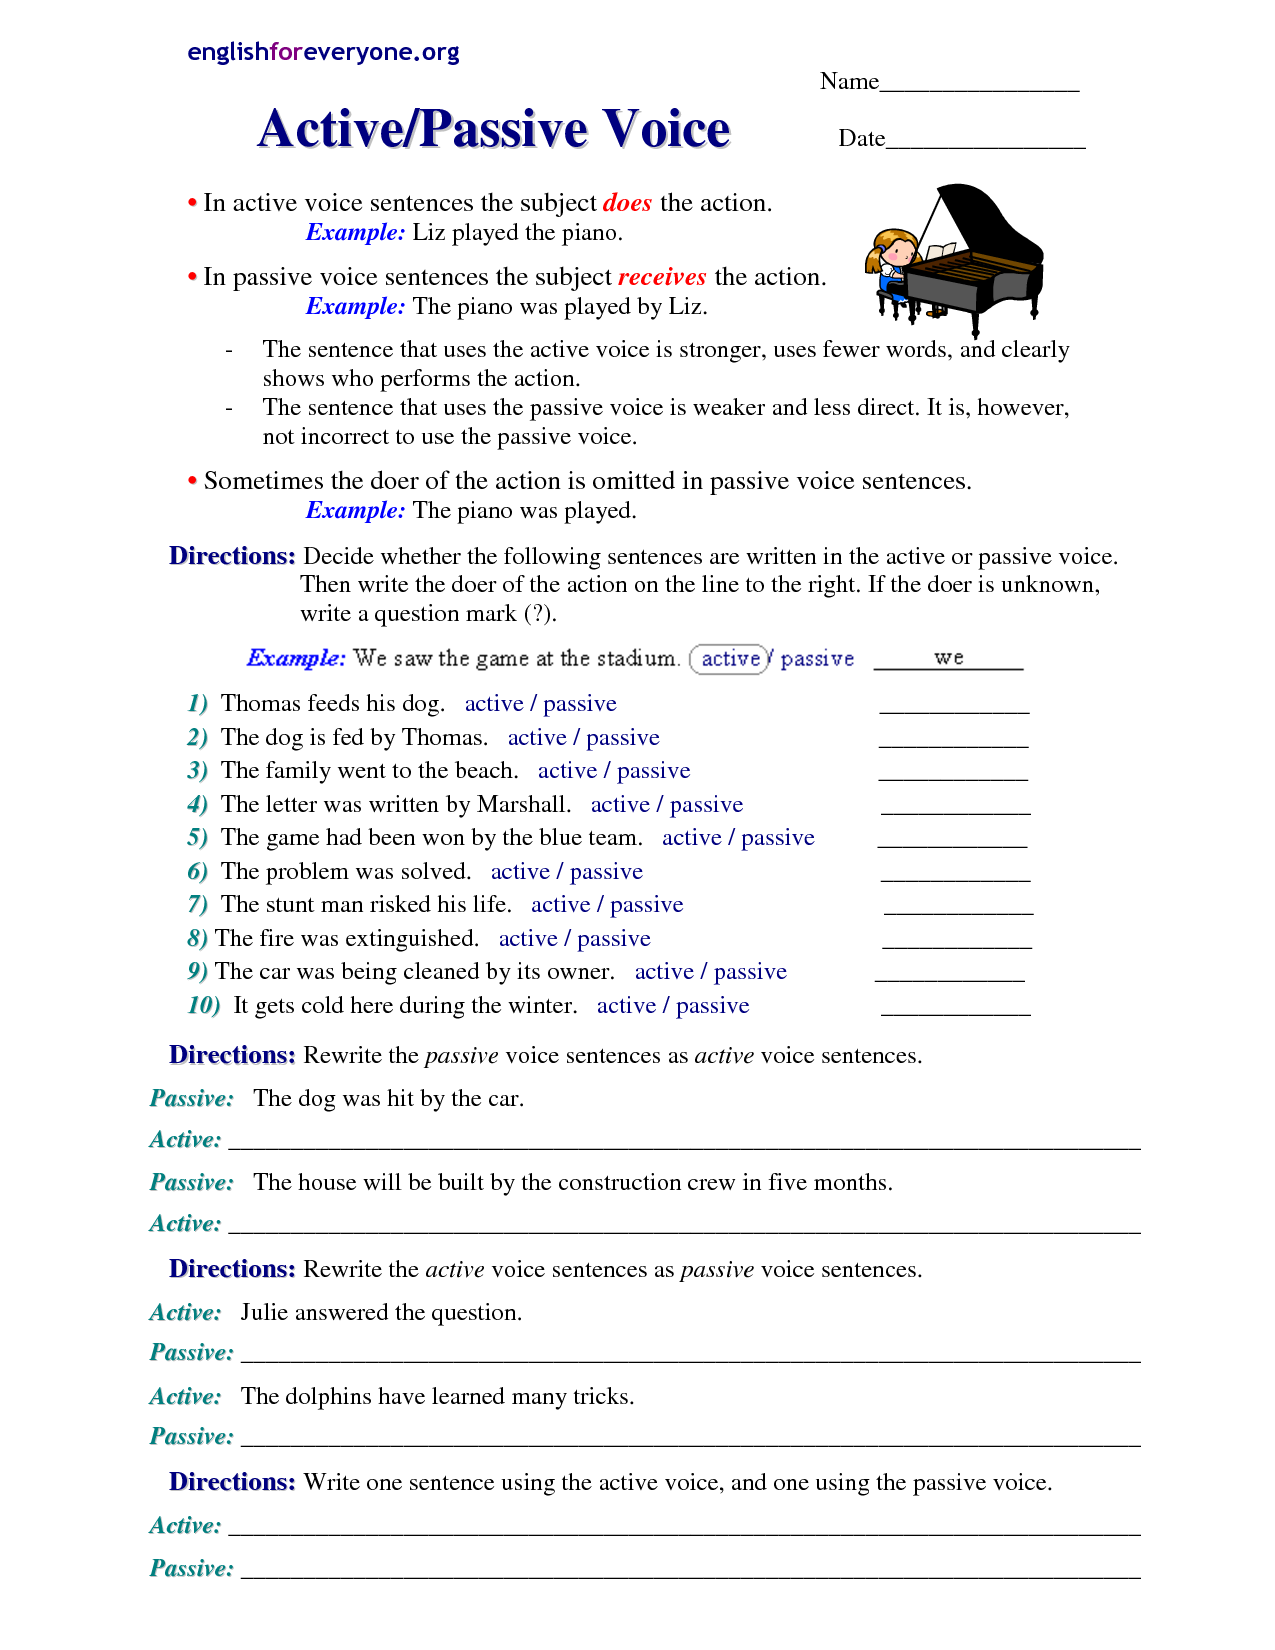 Worksheets Active And Passive Voice Worksheet com ptcategorygrammarpassive voice esl 2 pinterest english voice